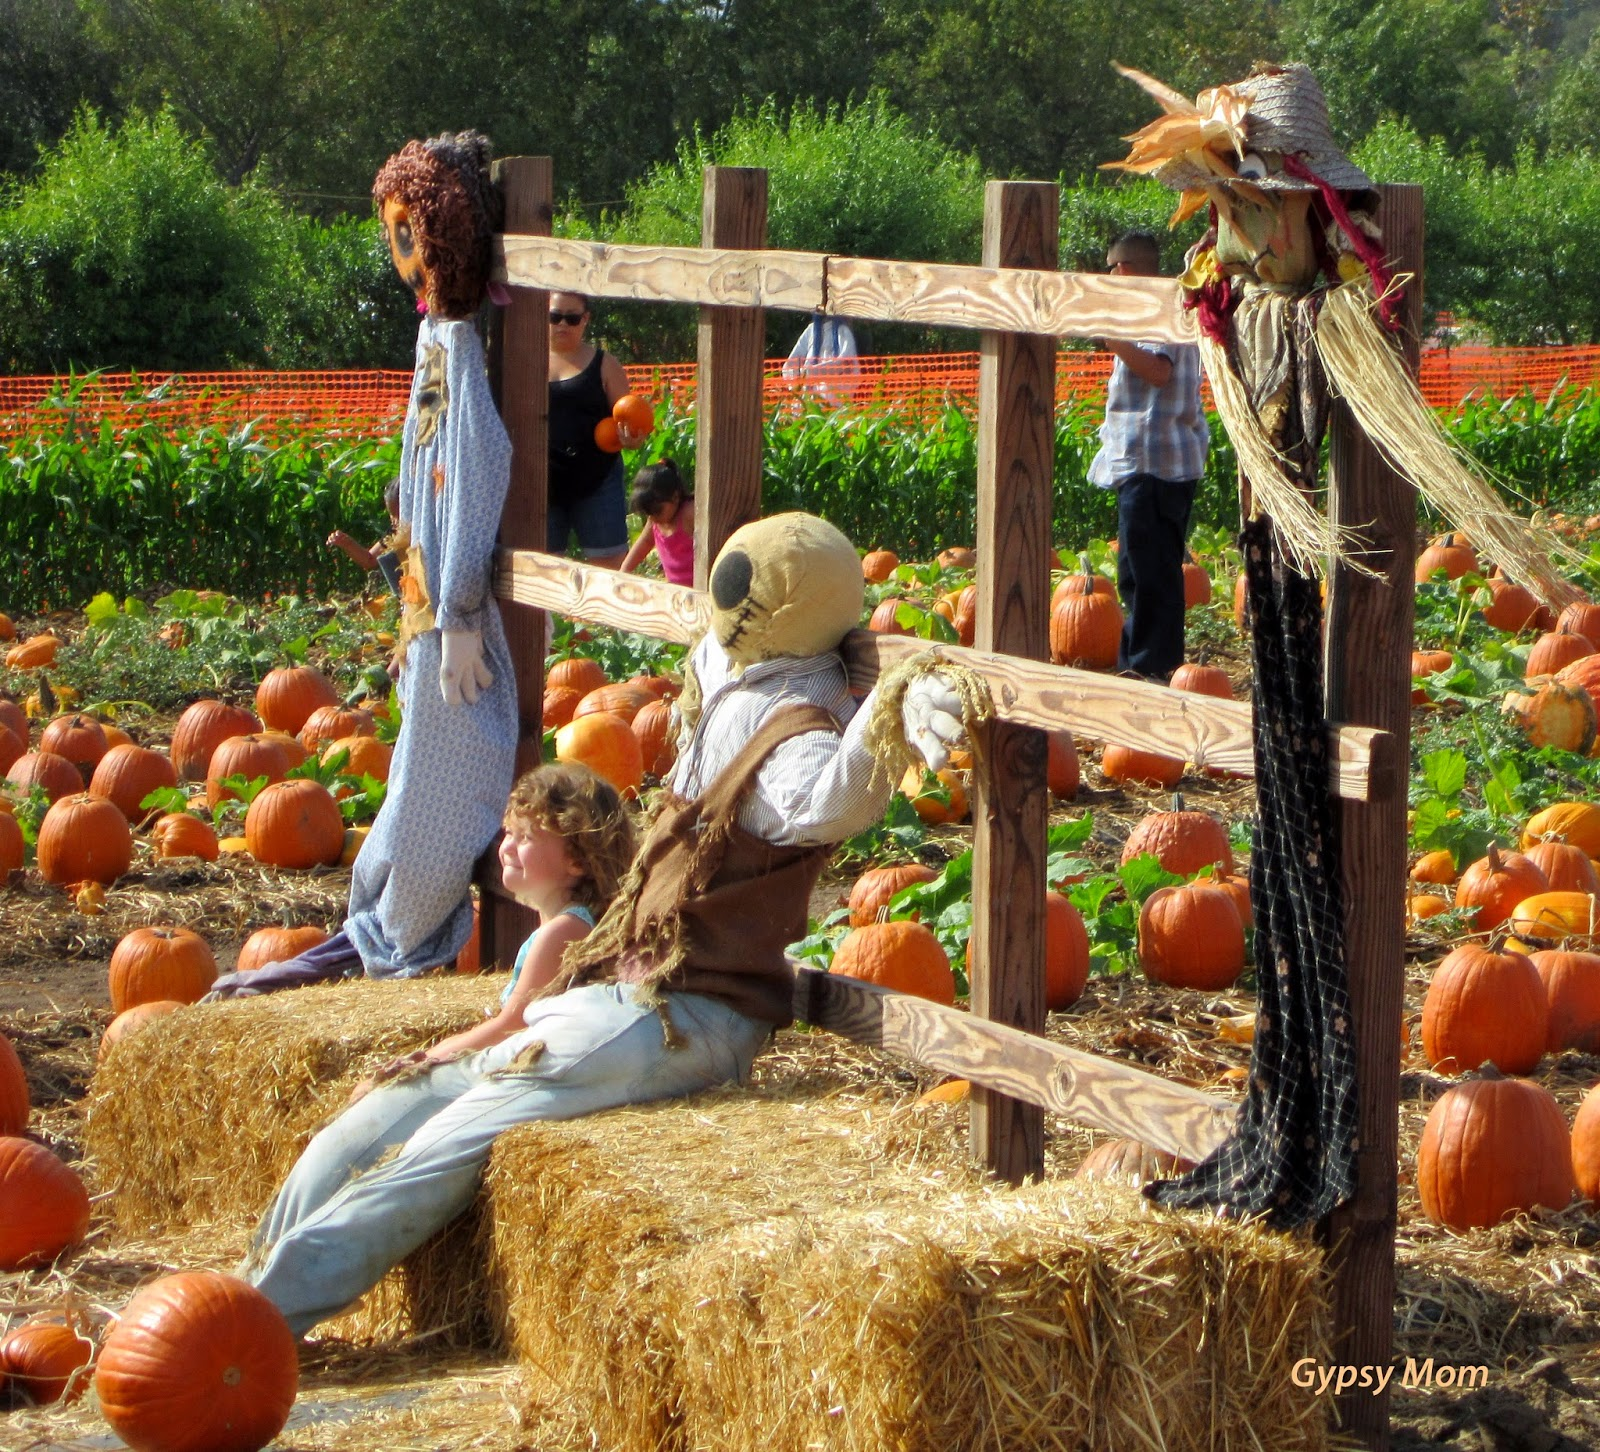 Pumpkins and scarecrows at Tanaka Farms in Irvine, CA